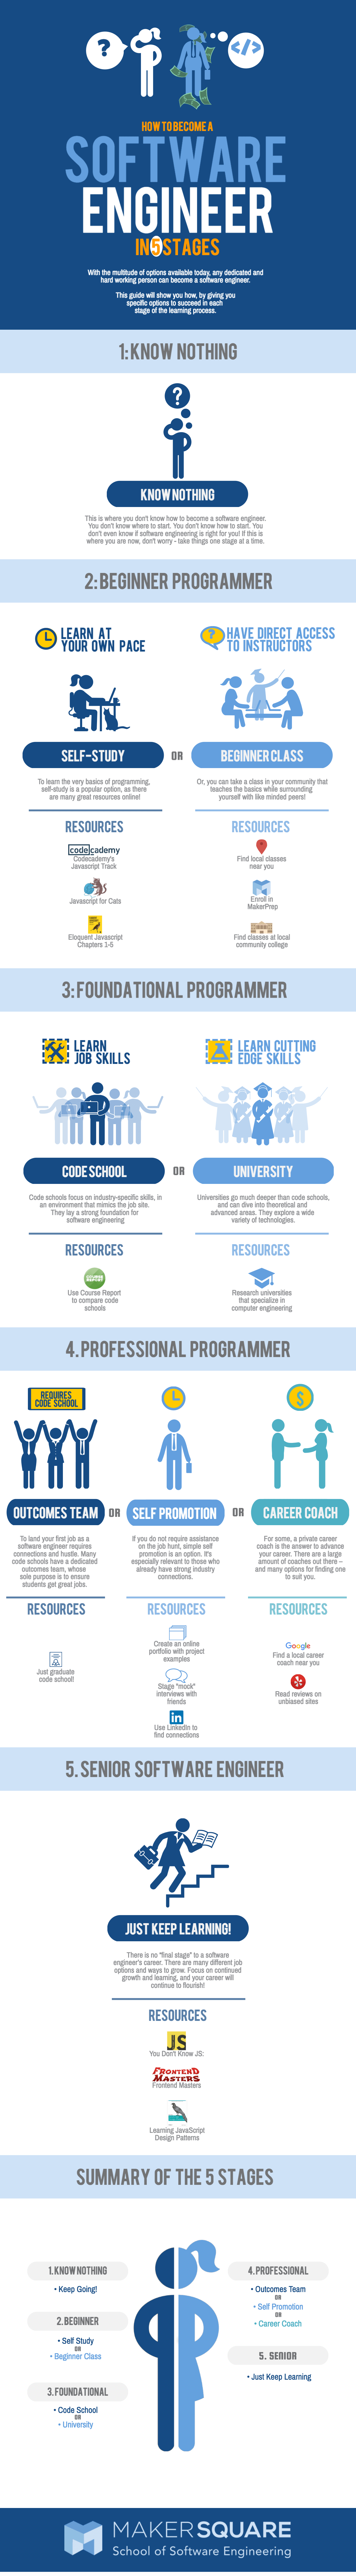 How To Become A Software Engineer In 5 Stages Infographic Portal Software Engineer Programing Software Computer Engineering